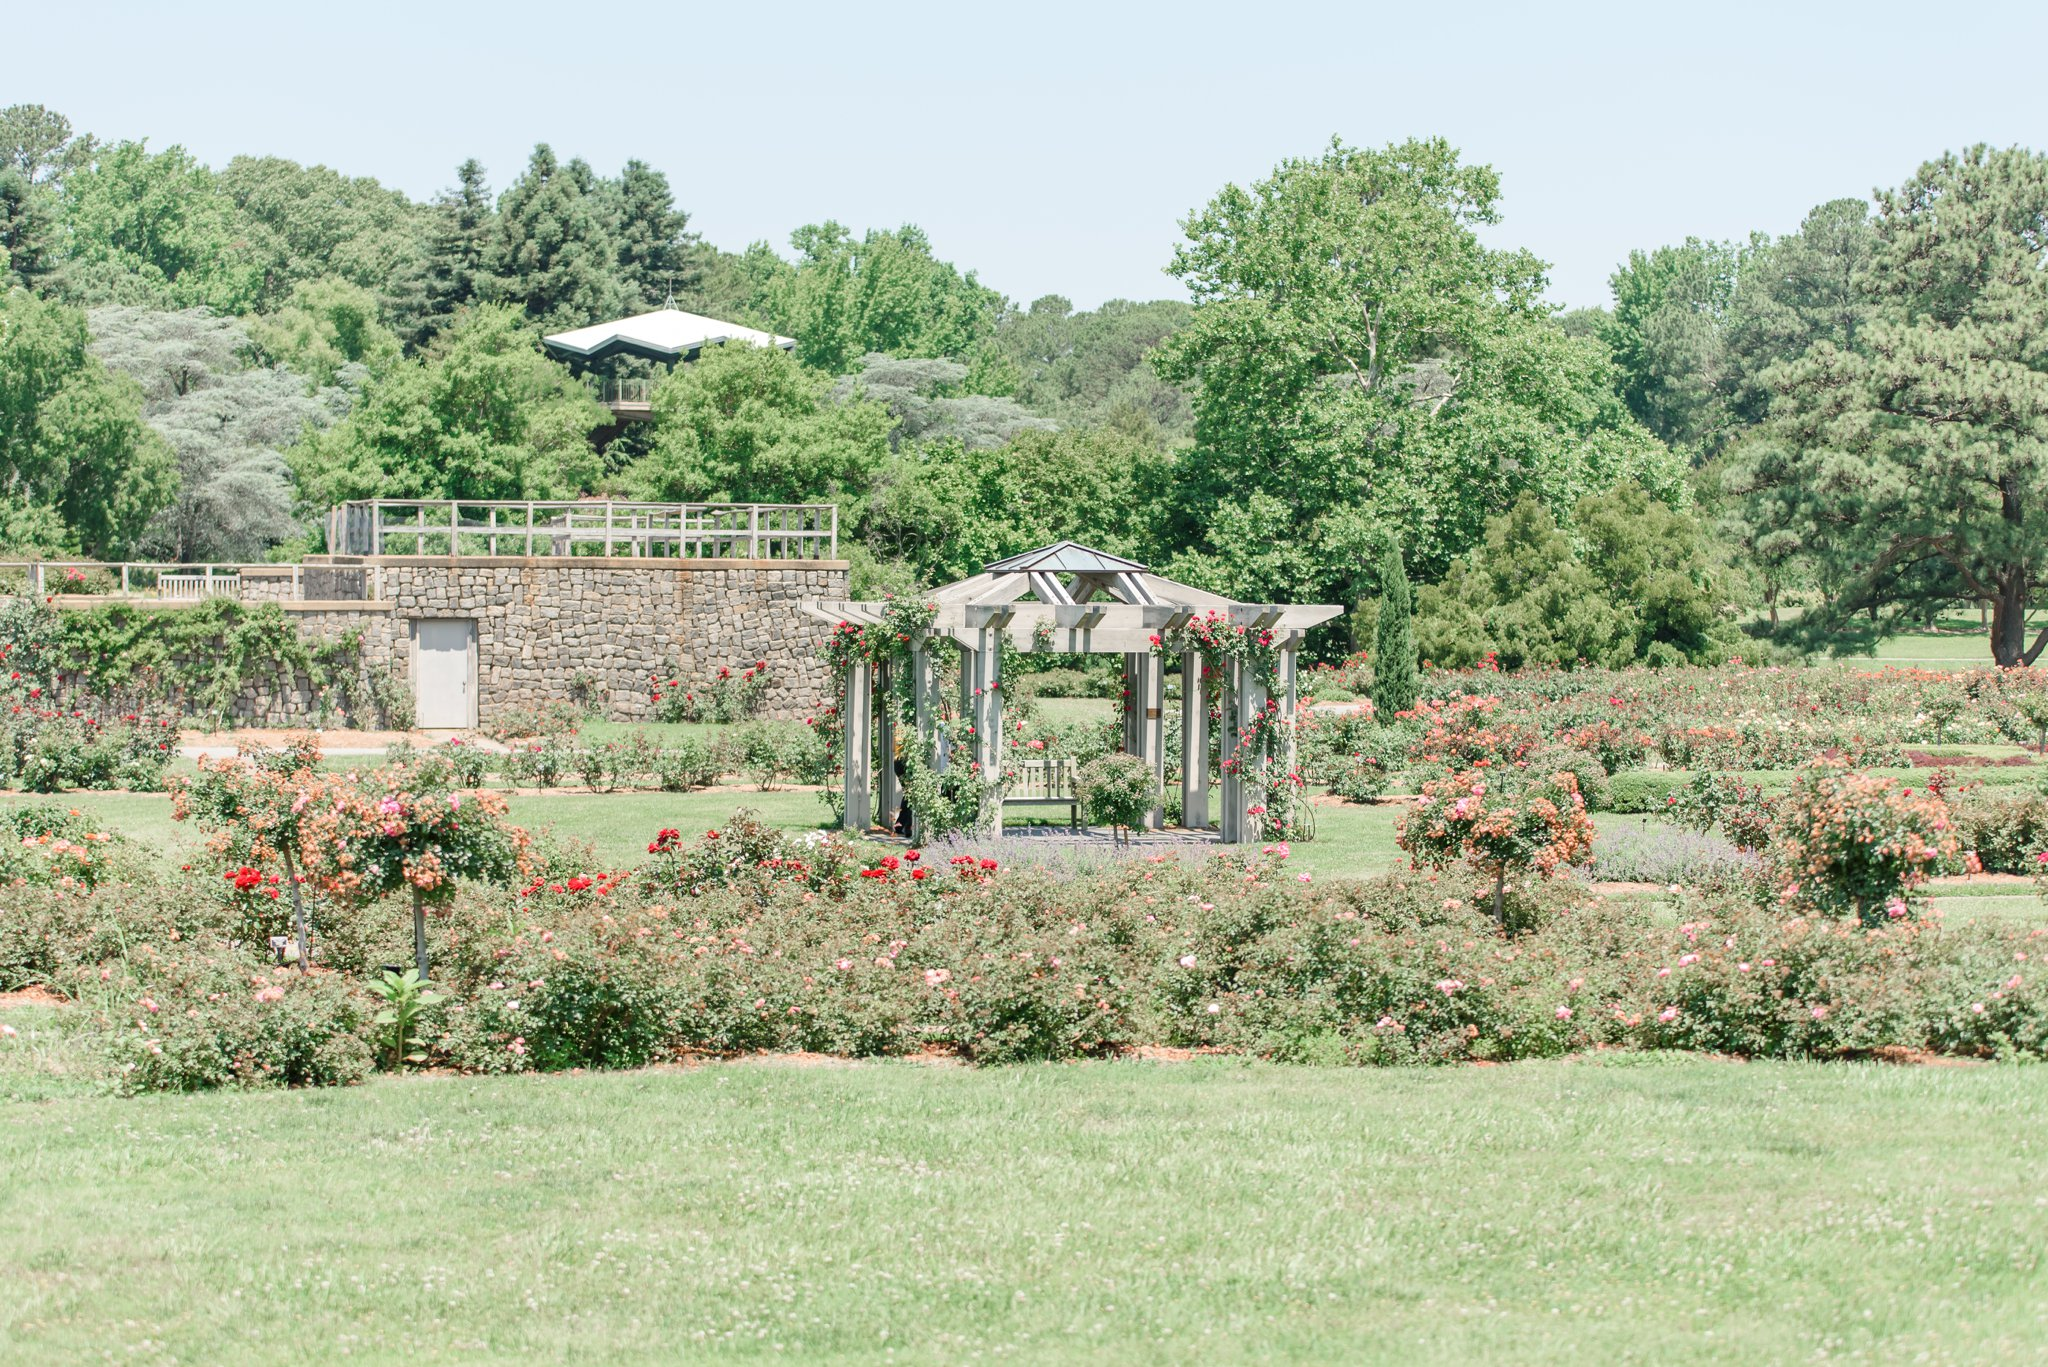 Luke had the Rose Garden reserved, so that after we toured the other side of the Botanical Gardens we could make our way to the private event - which was them! <3